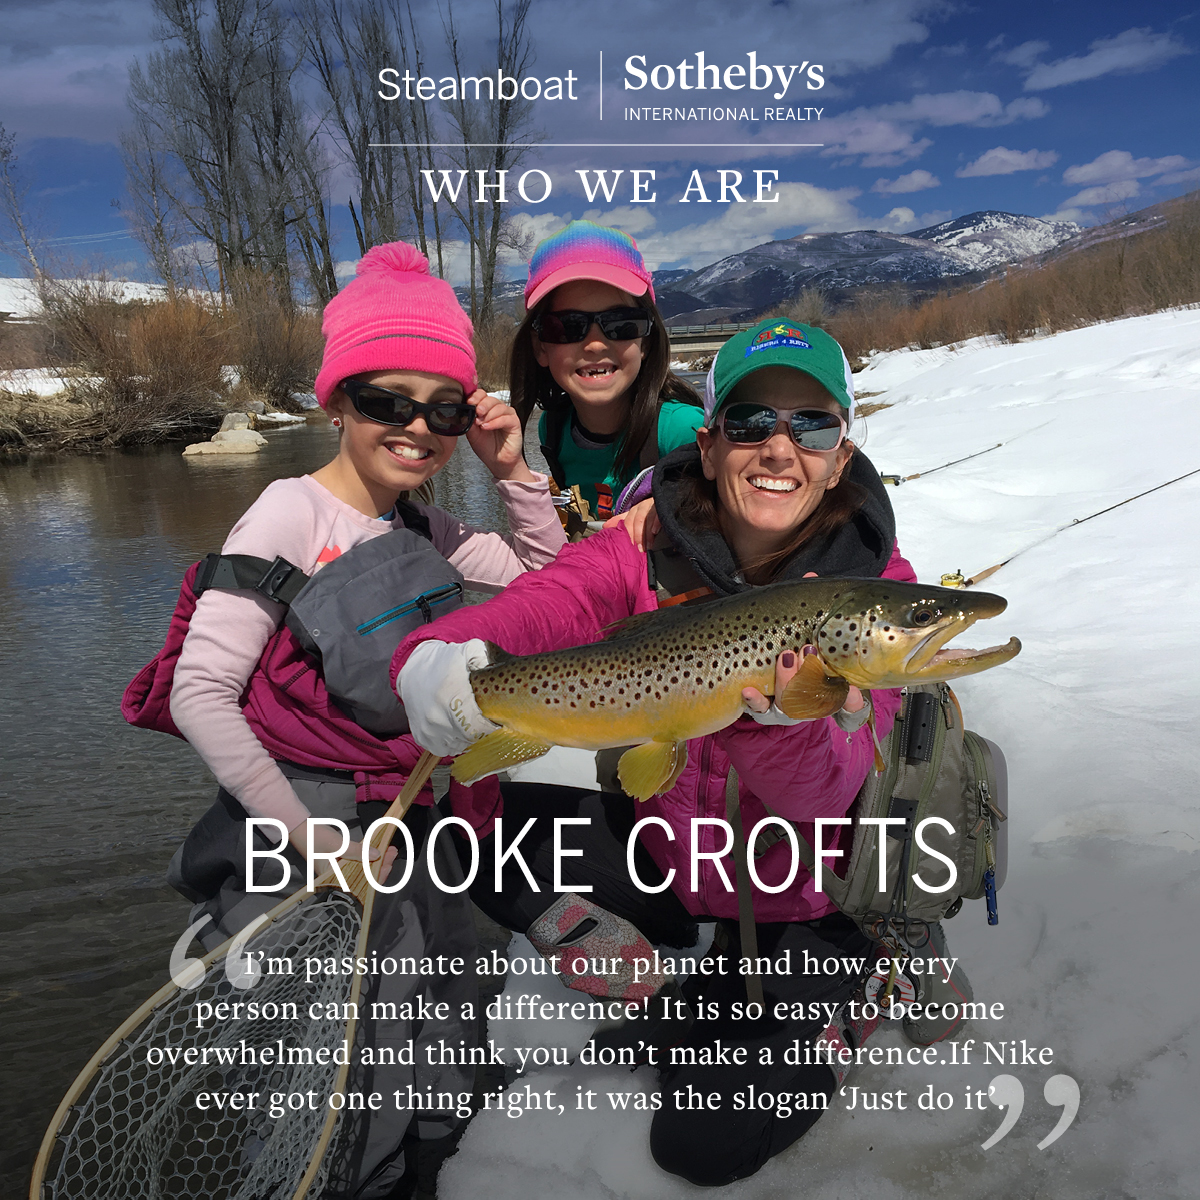 WHO WE ARE – BROOKE CROFTS